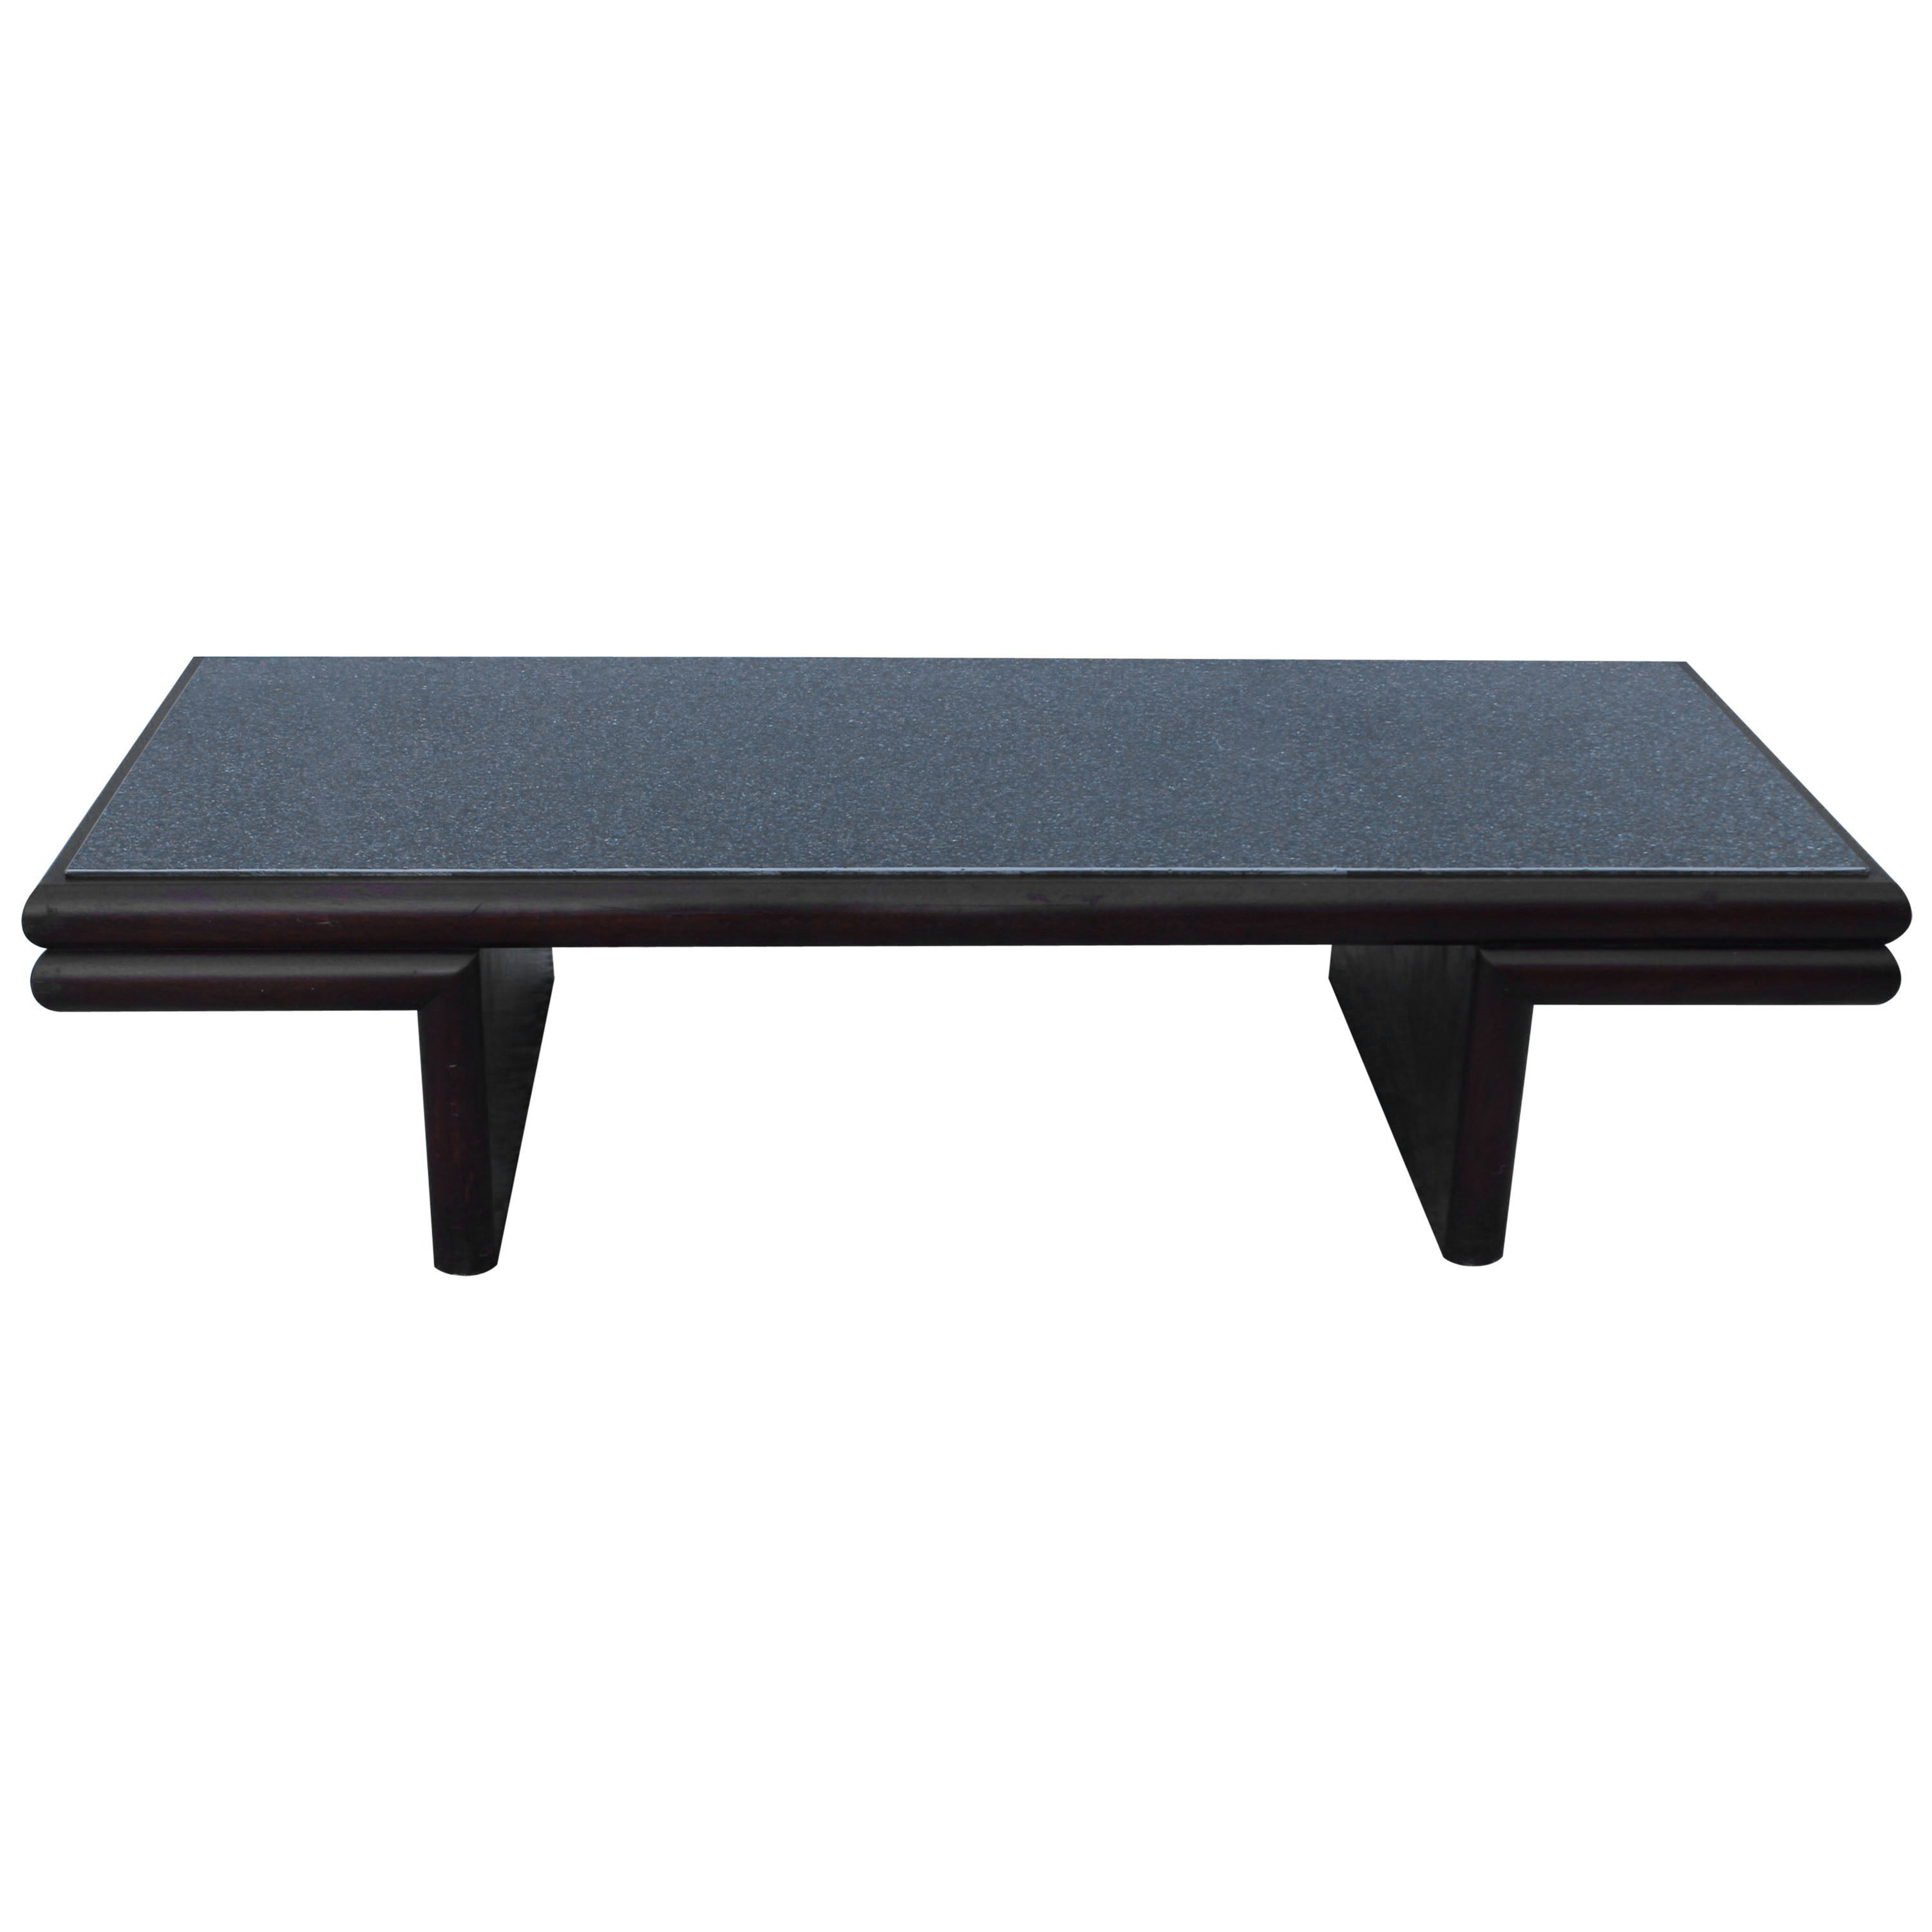 Harvey Probber Style Resin Top Modernist Coffee Table